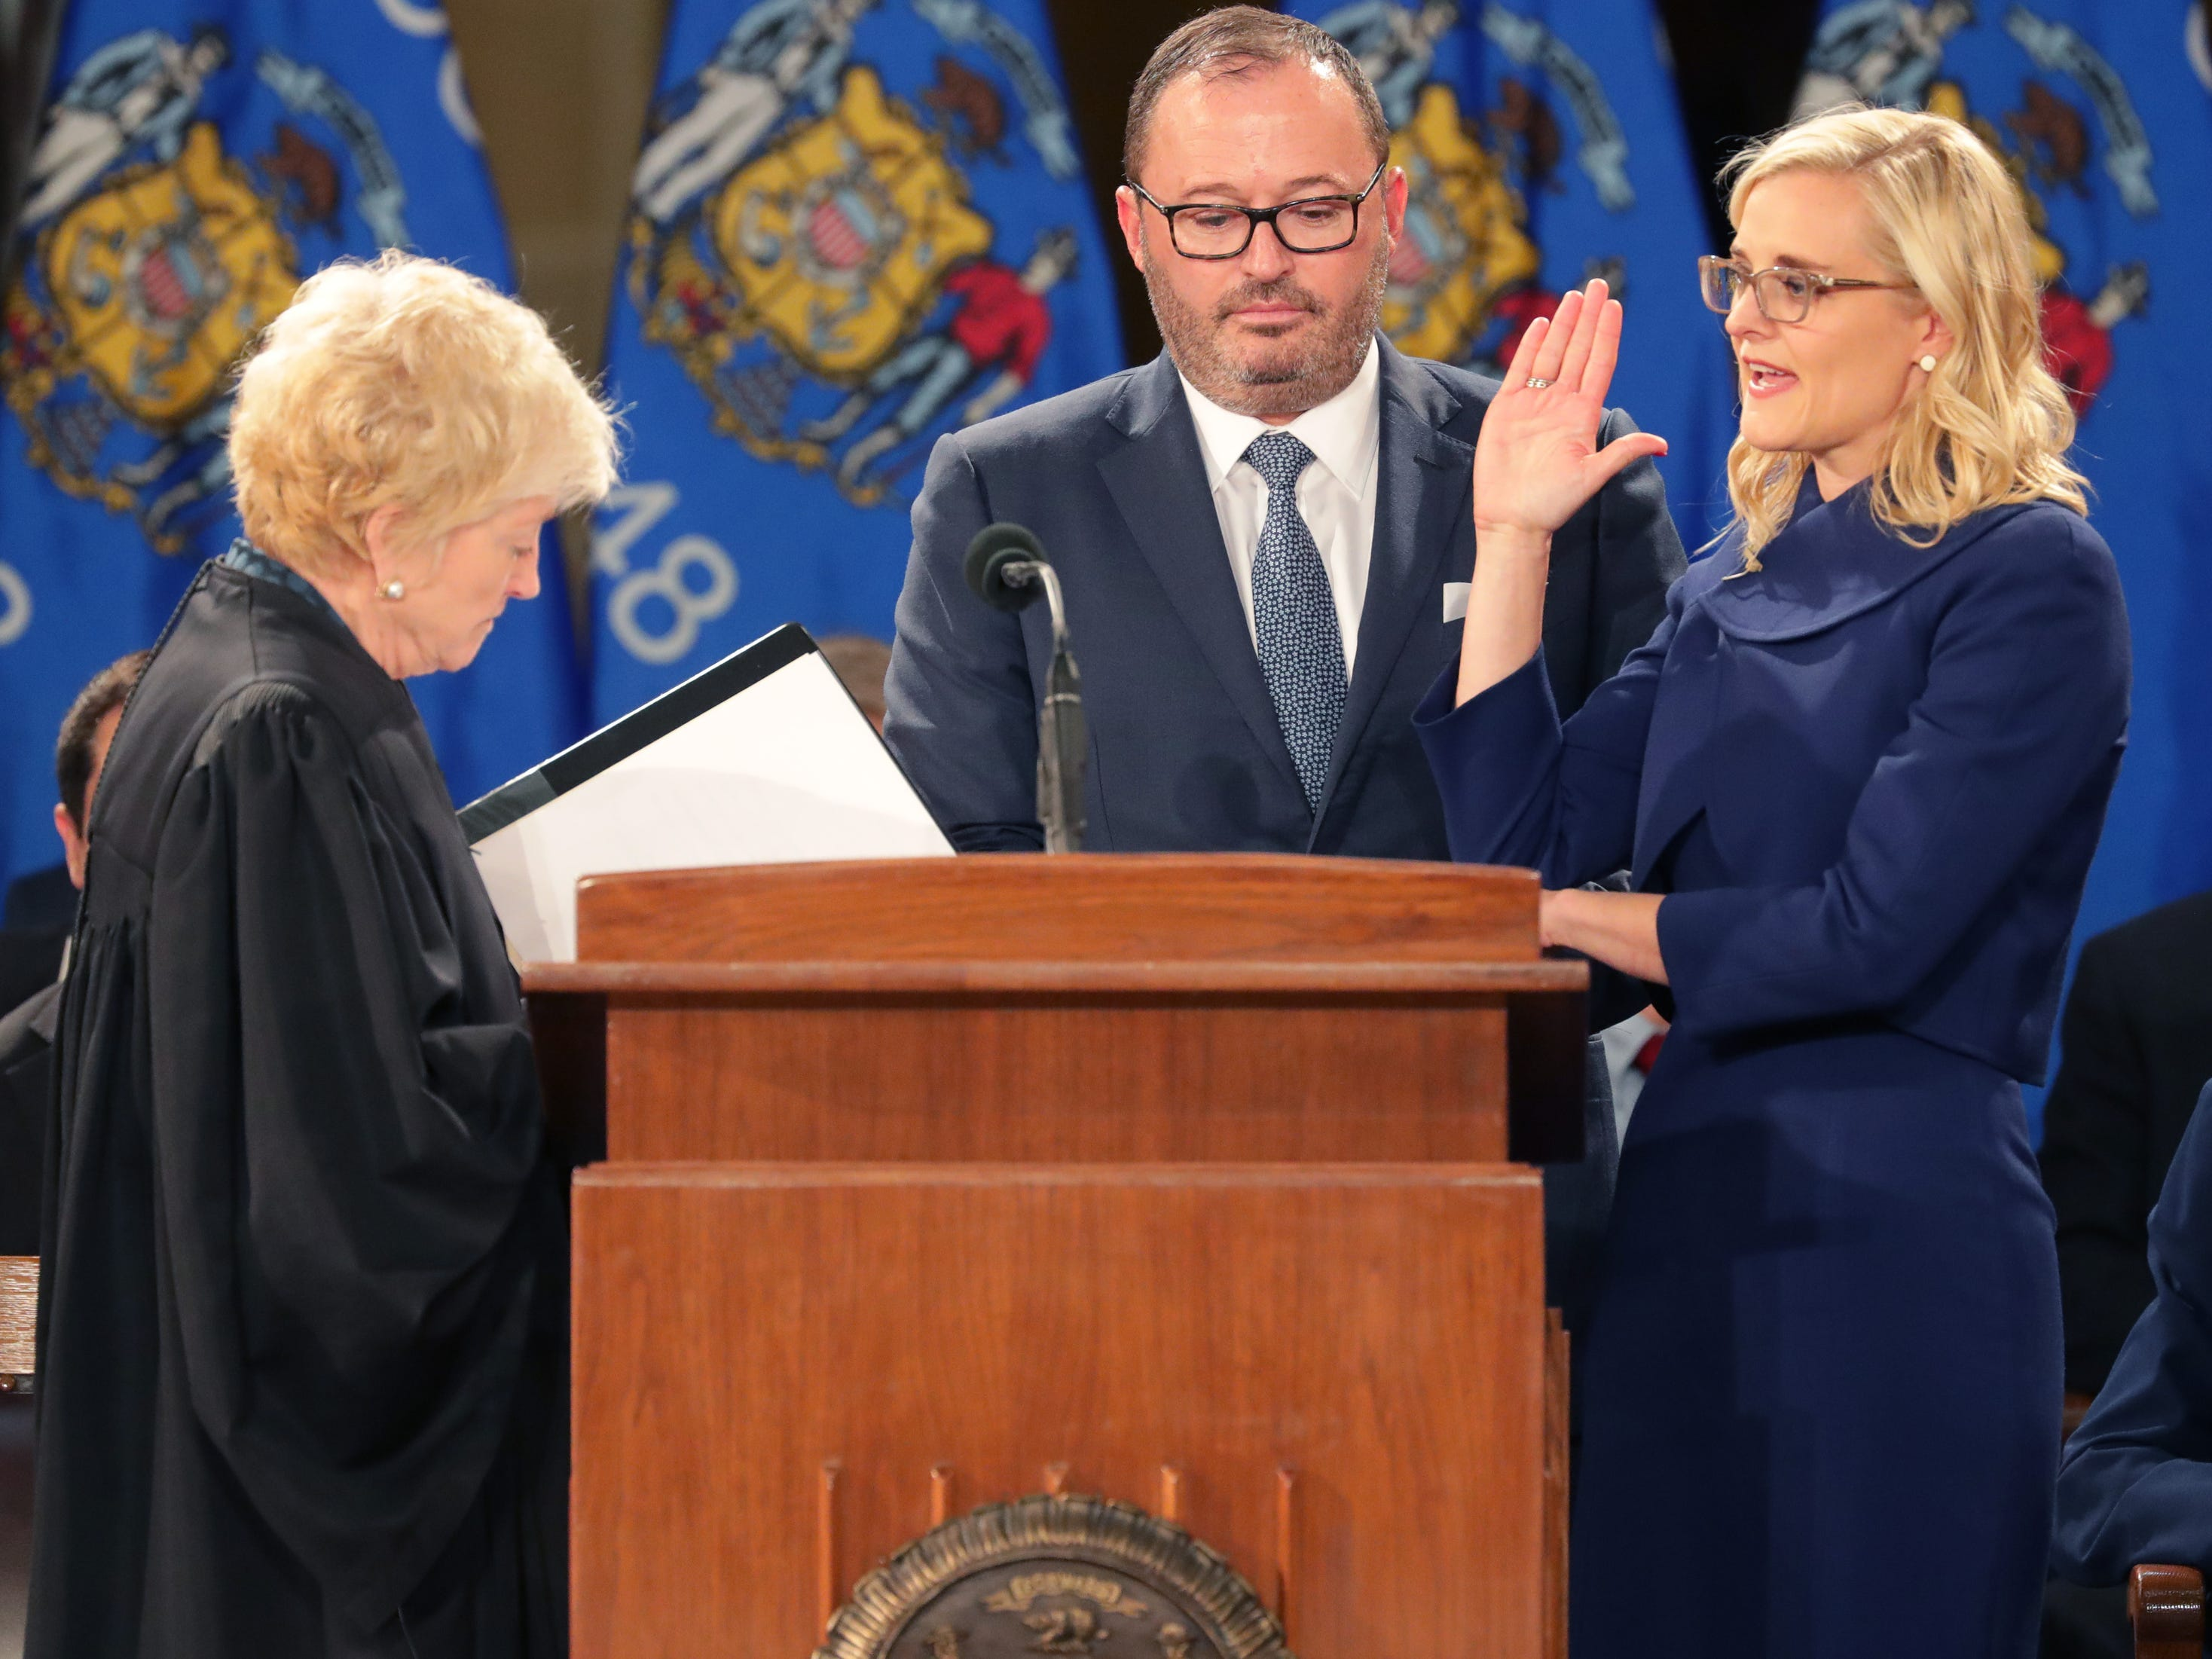 Chief Justice Patience D. Roggensack (left) administers the oath of office to State Treasurer Sarah Godlewski.